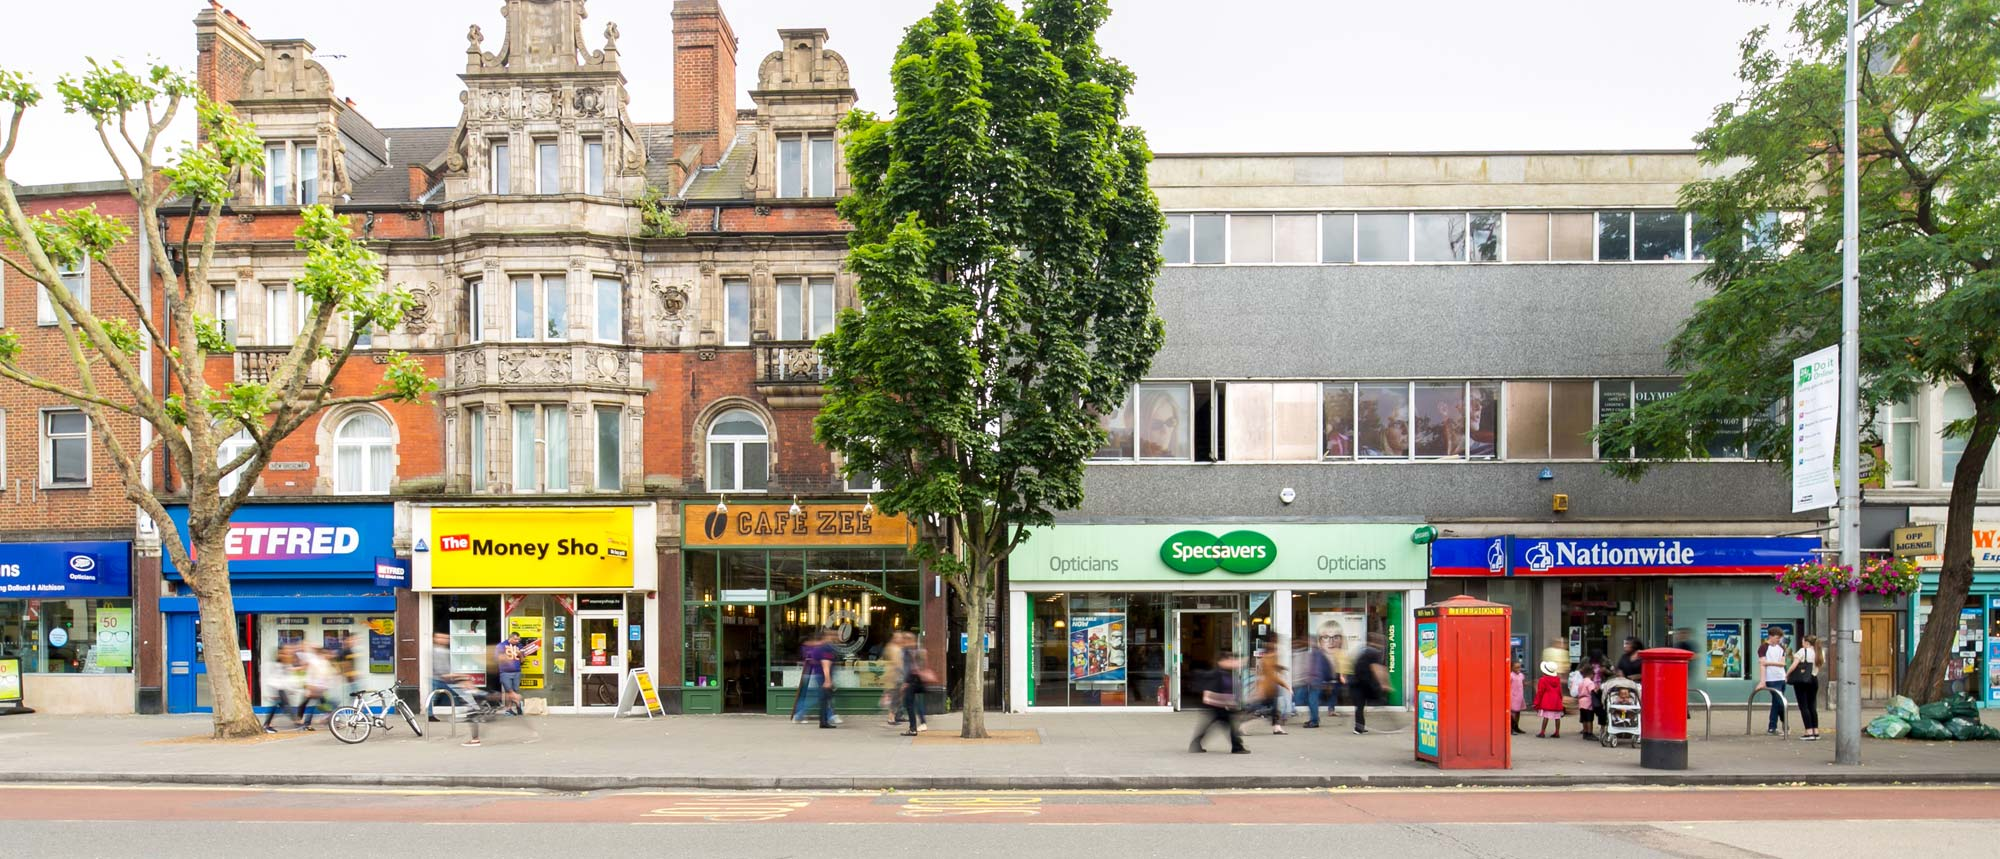 Wide shot of Ealing shops